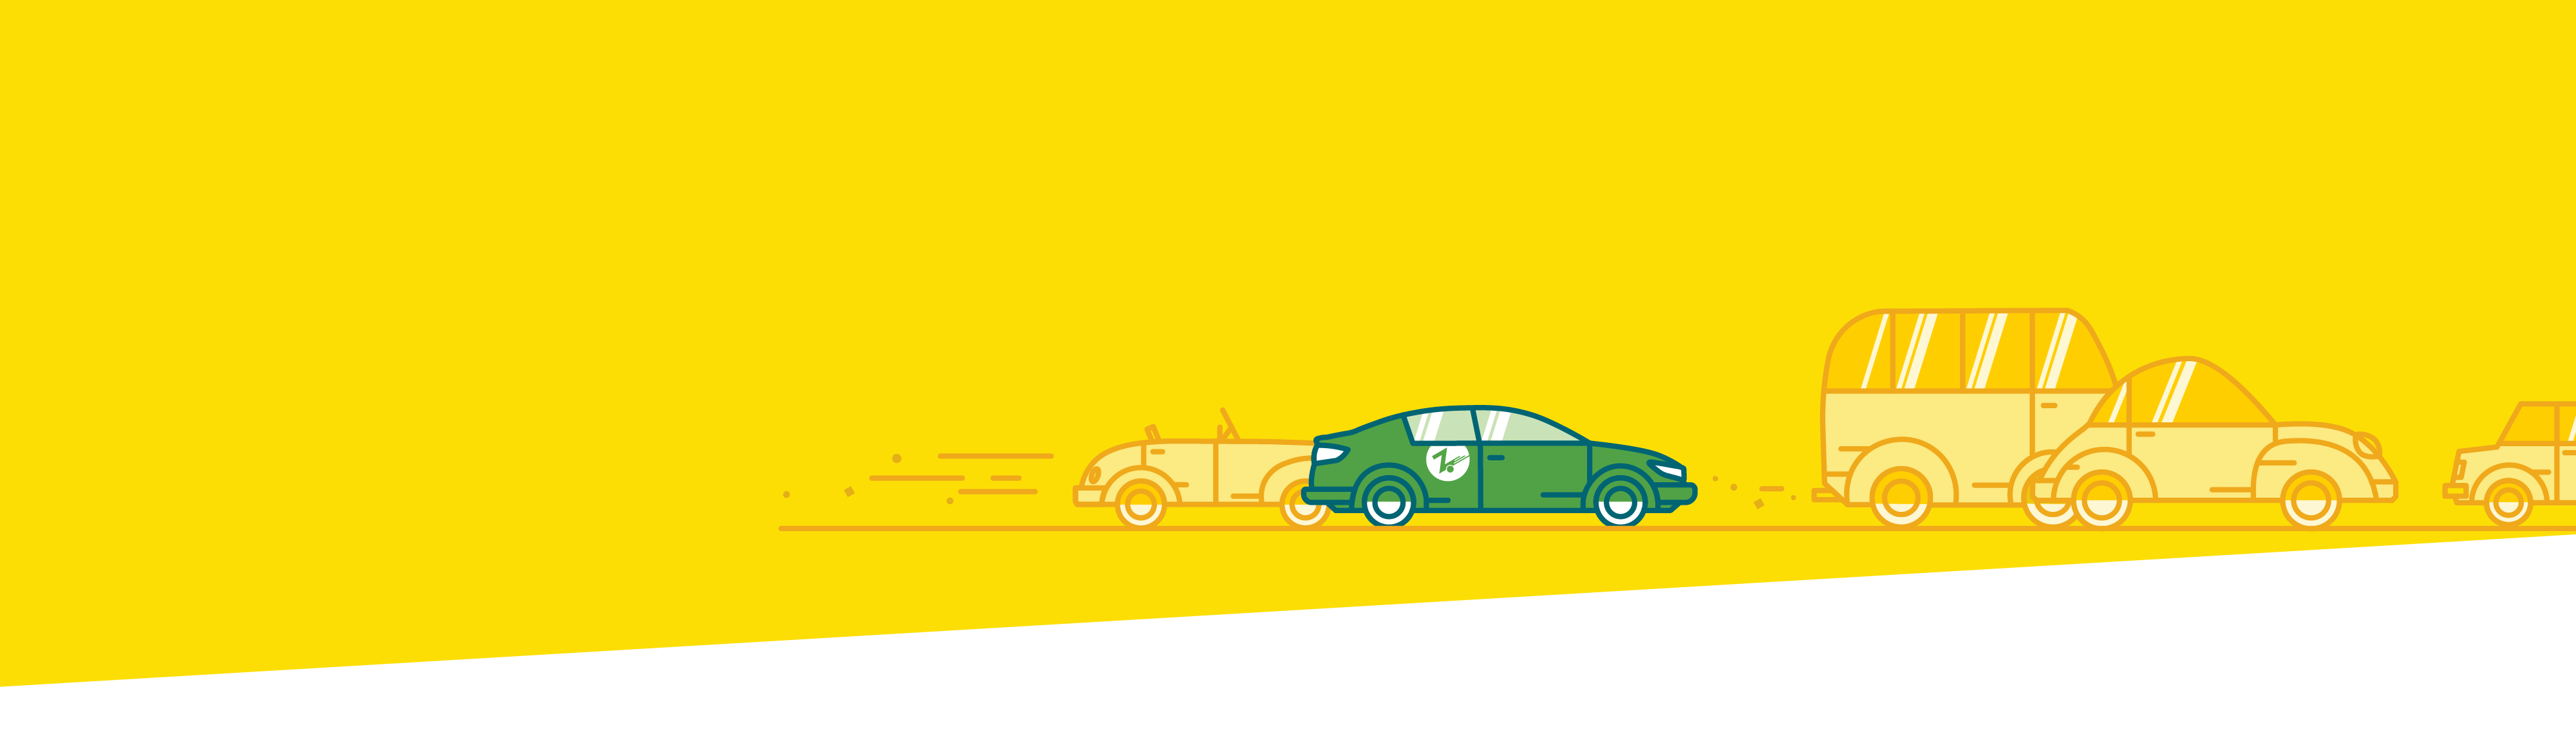 yellow with green car